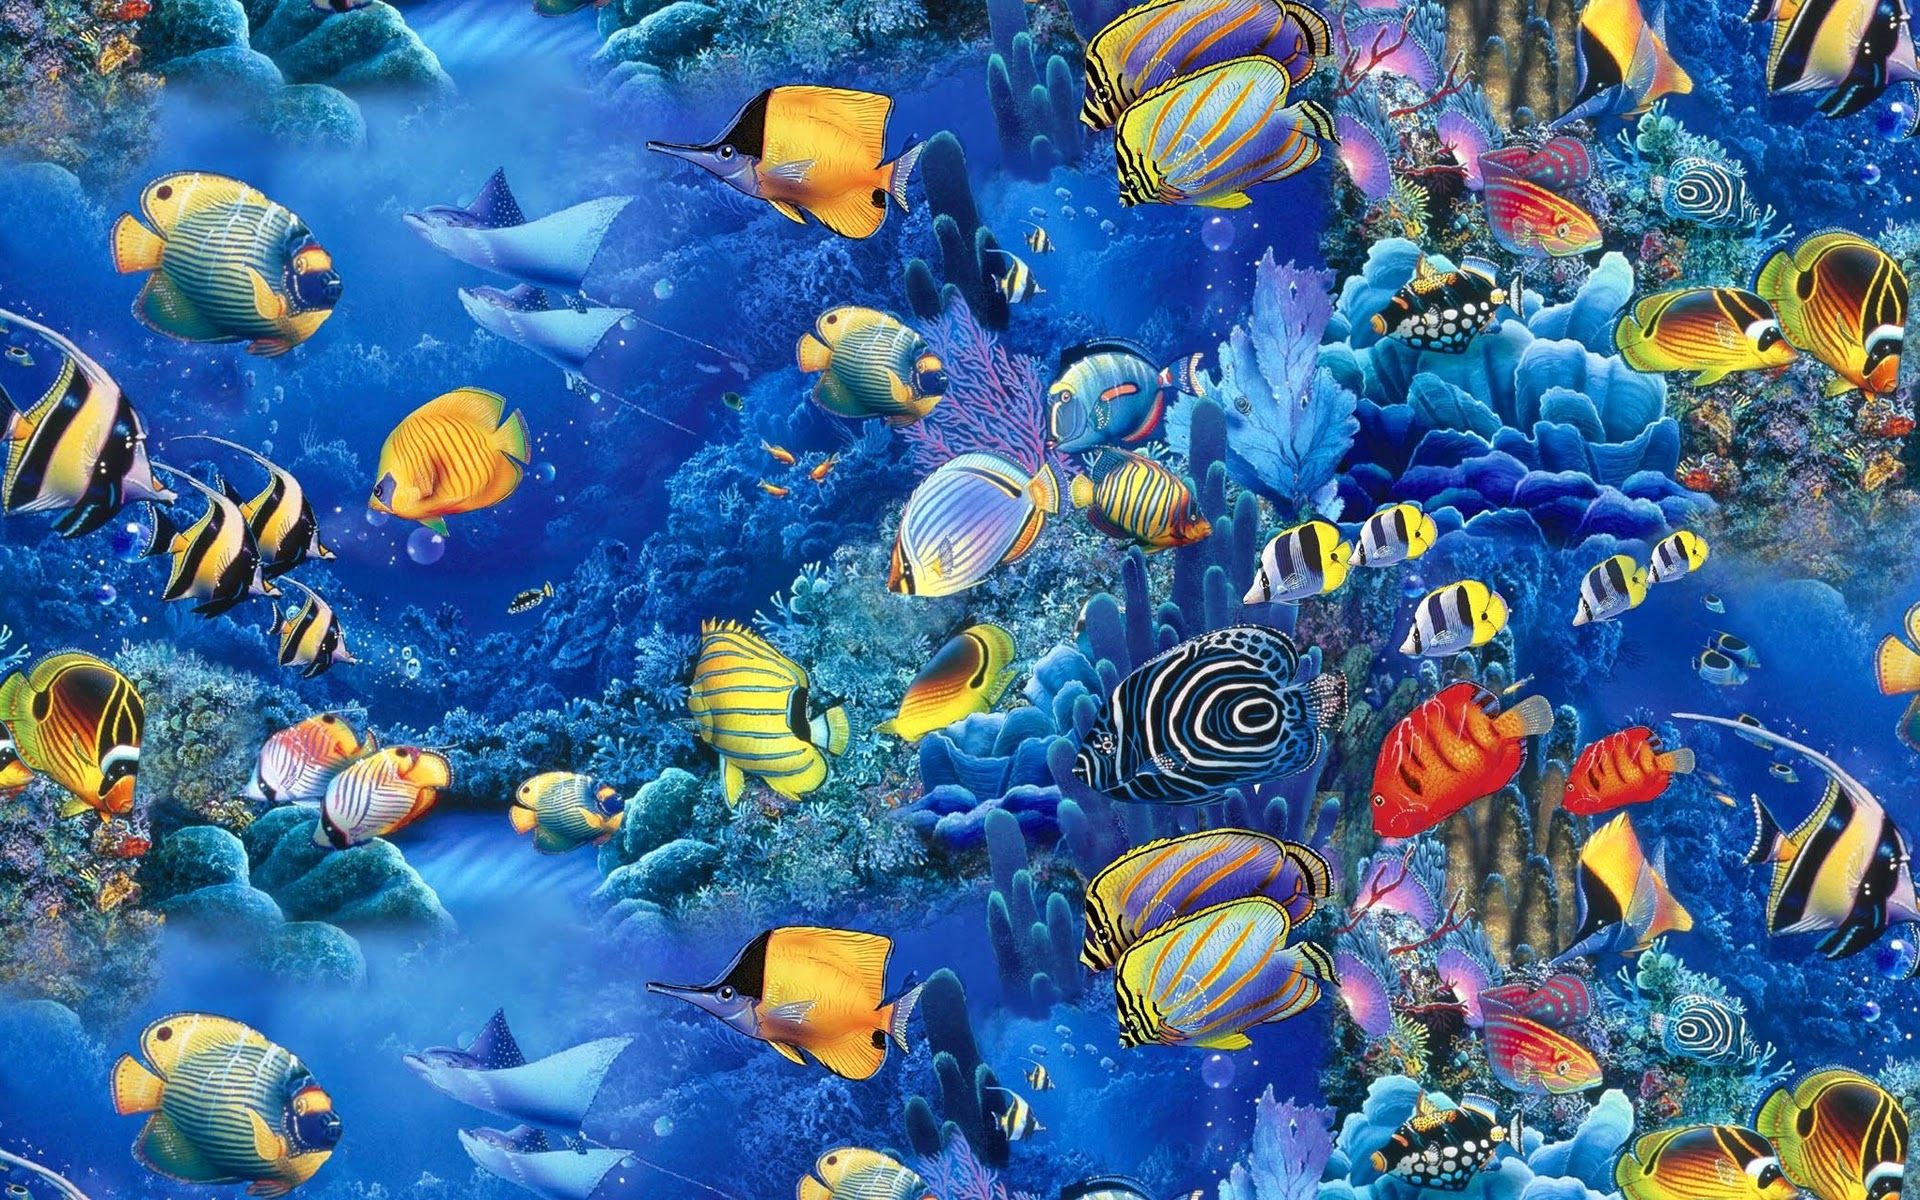 Colorful Fish wallpaper - 1109960